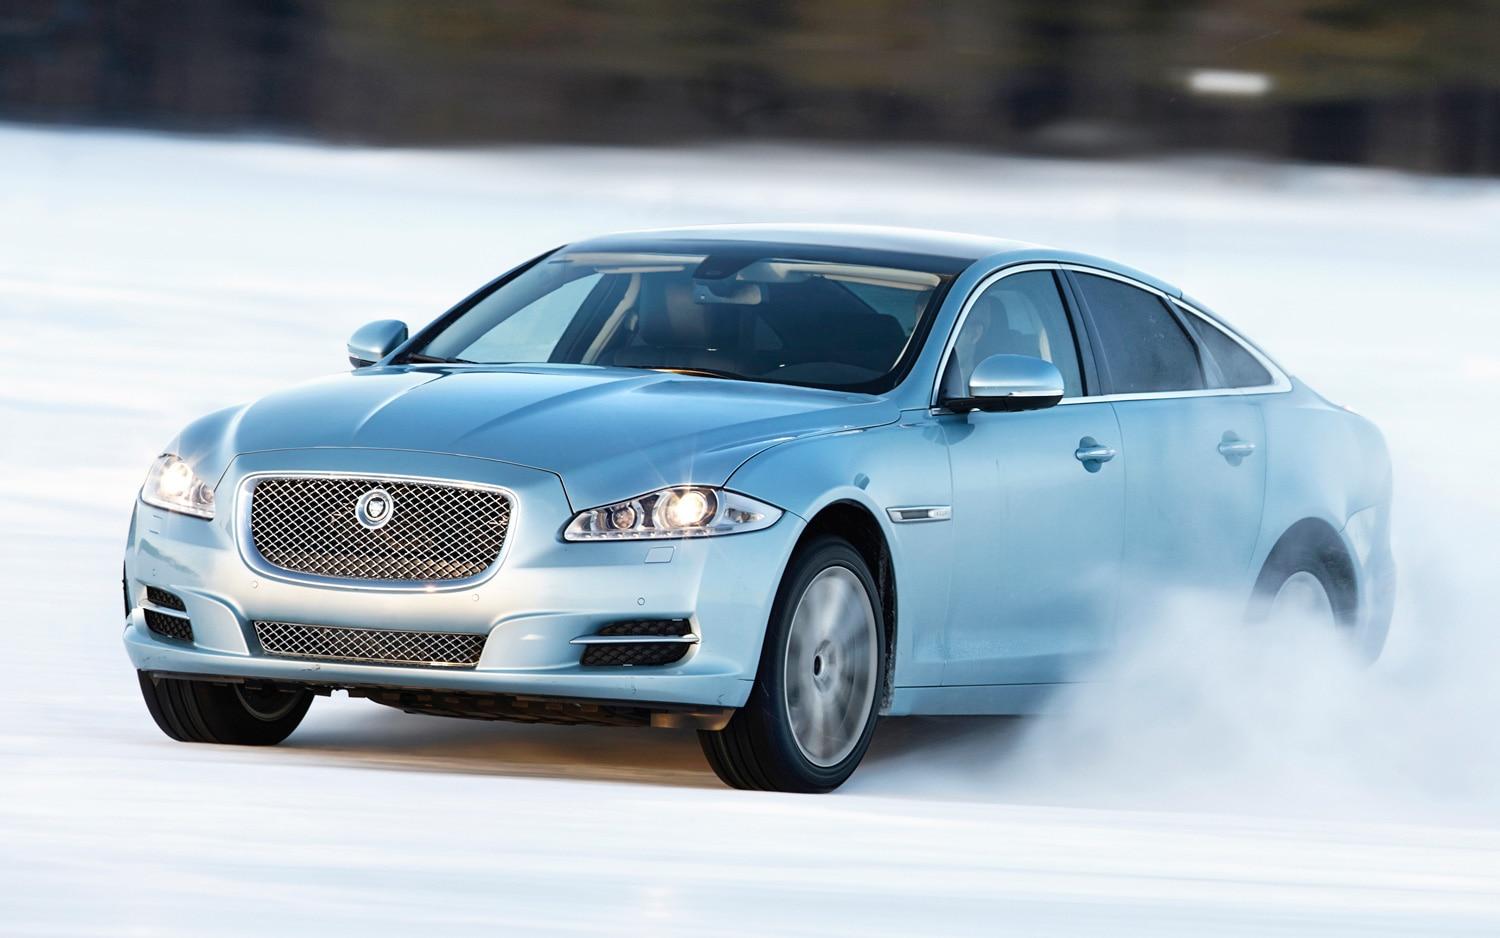 2013 Jaguar XJ 30 AWD Front View In Snow1